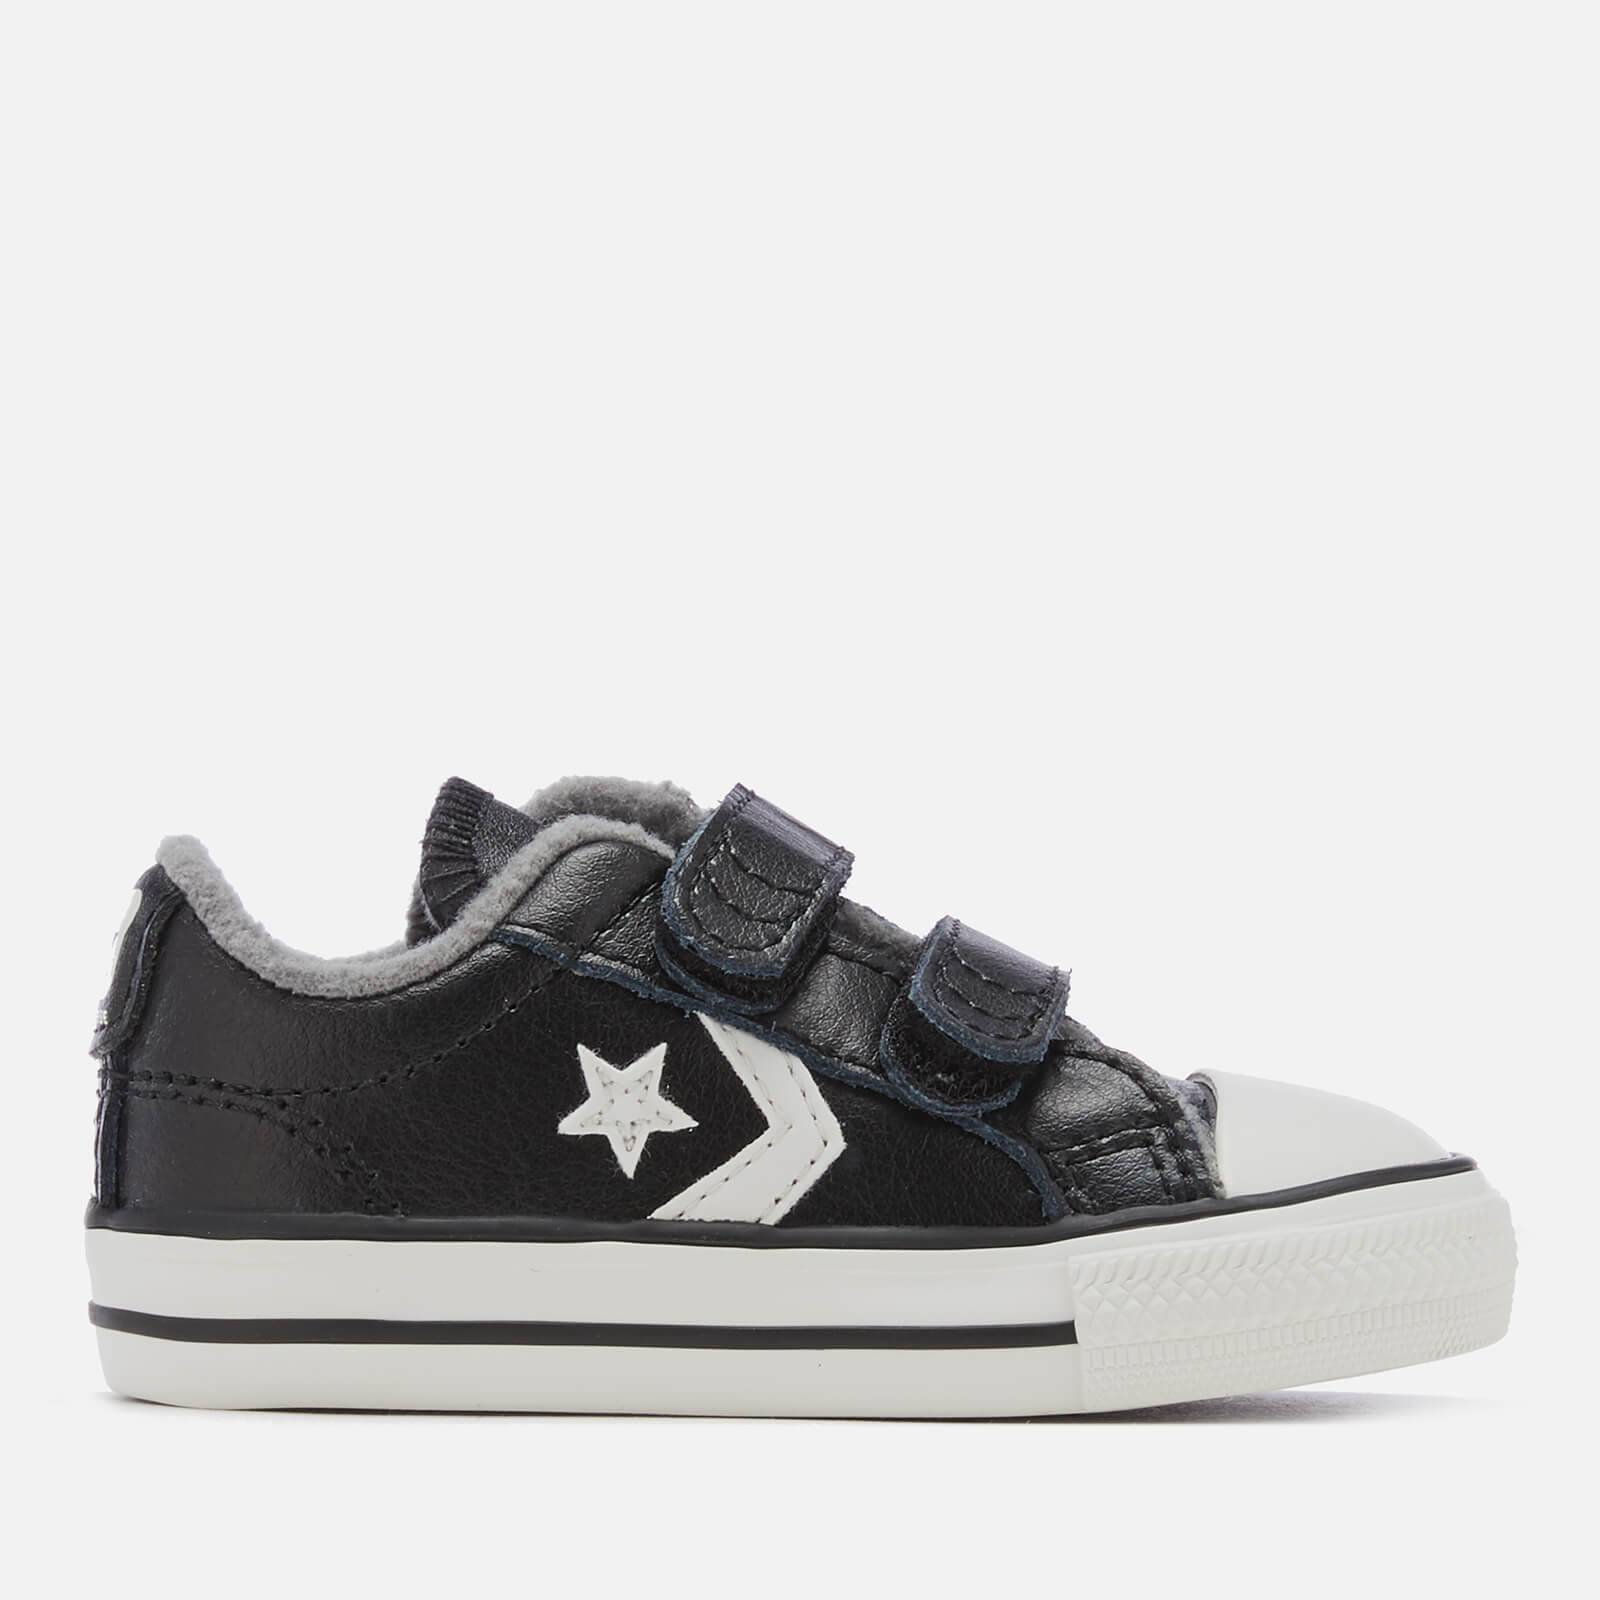 Converse Toddlers' Star Player 2V Ox Trainers - Black/Mason/Vintage White - UK 2 Toddler - Black